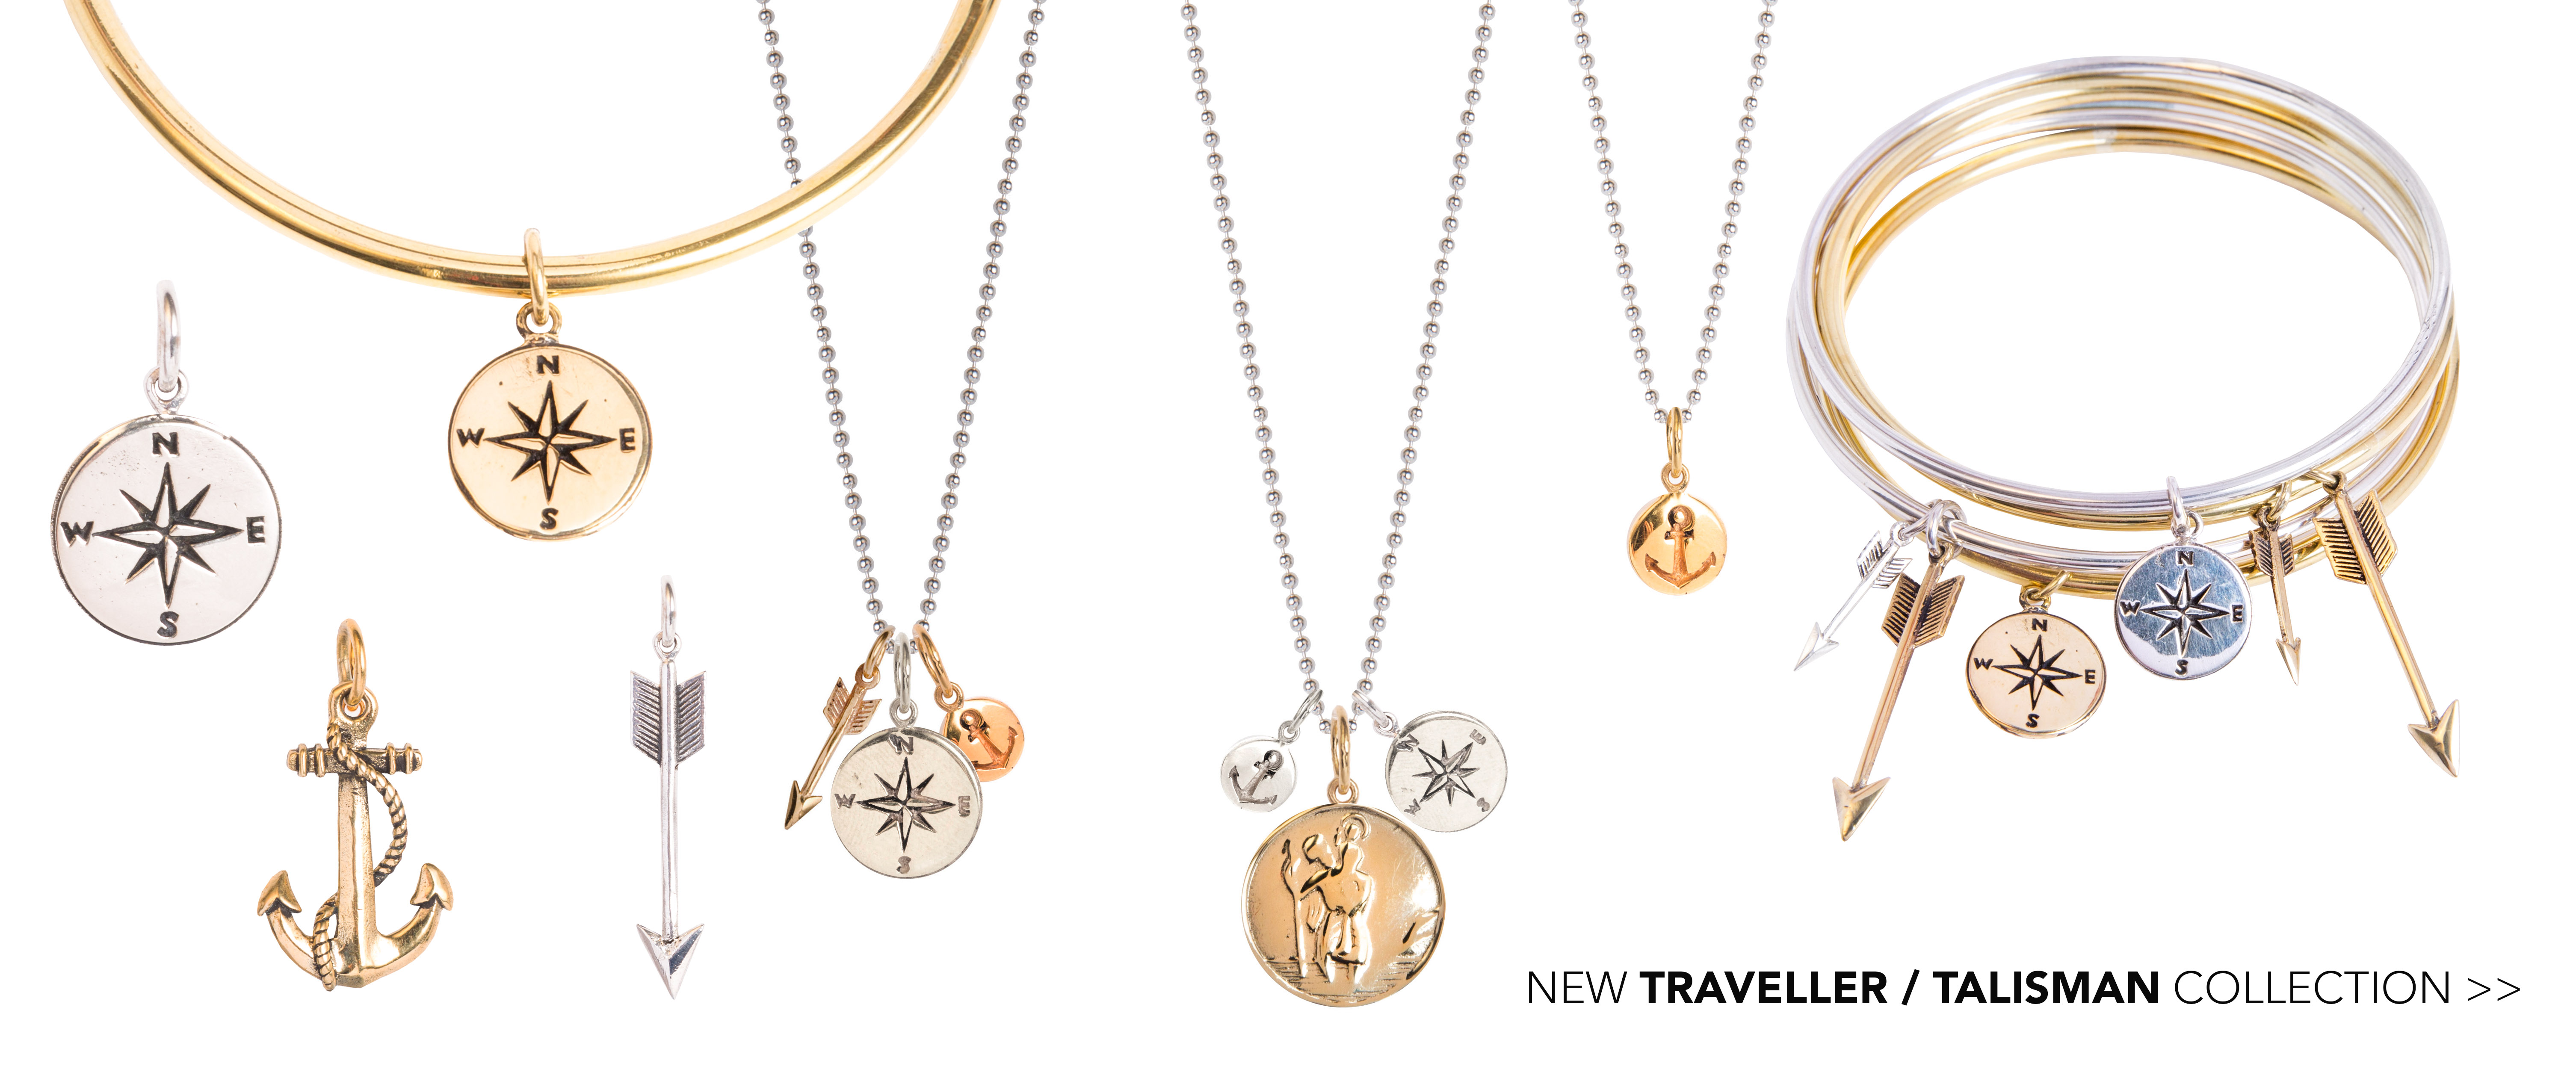 Travelling Talisman Collection